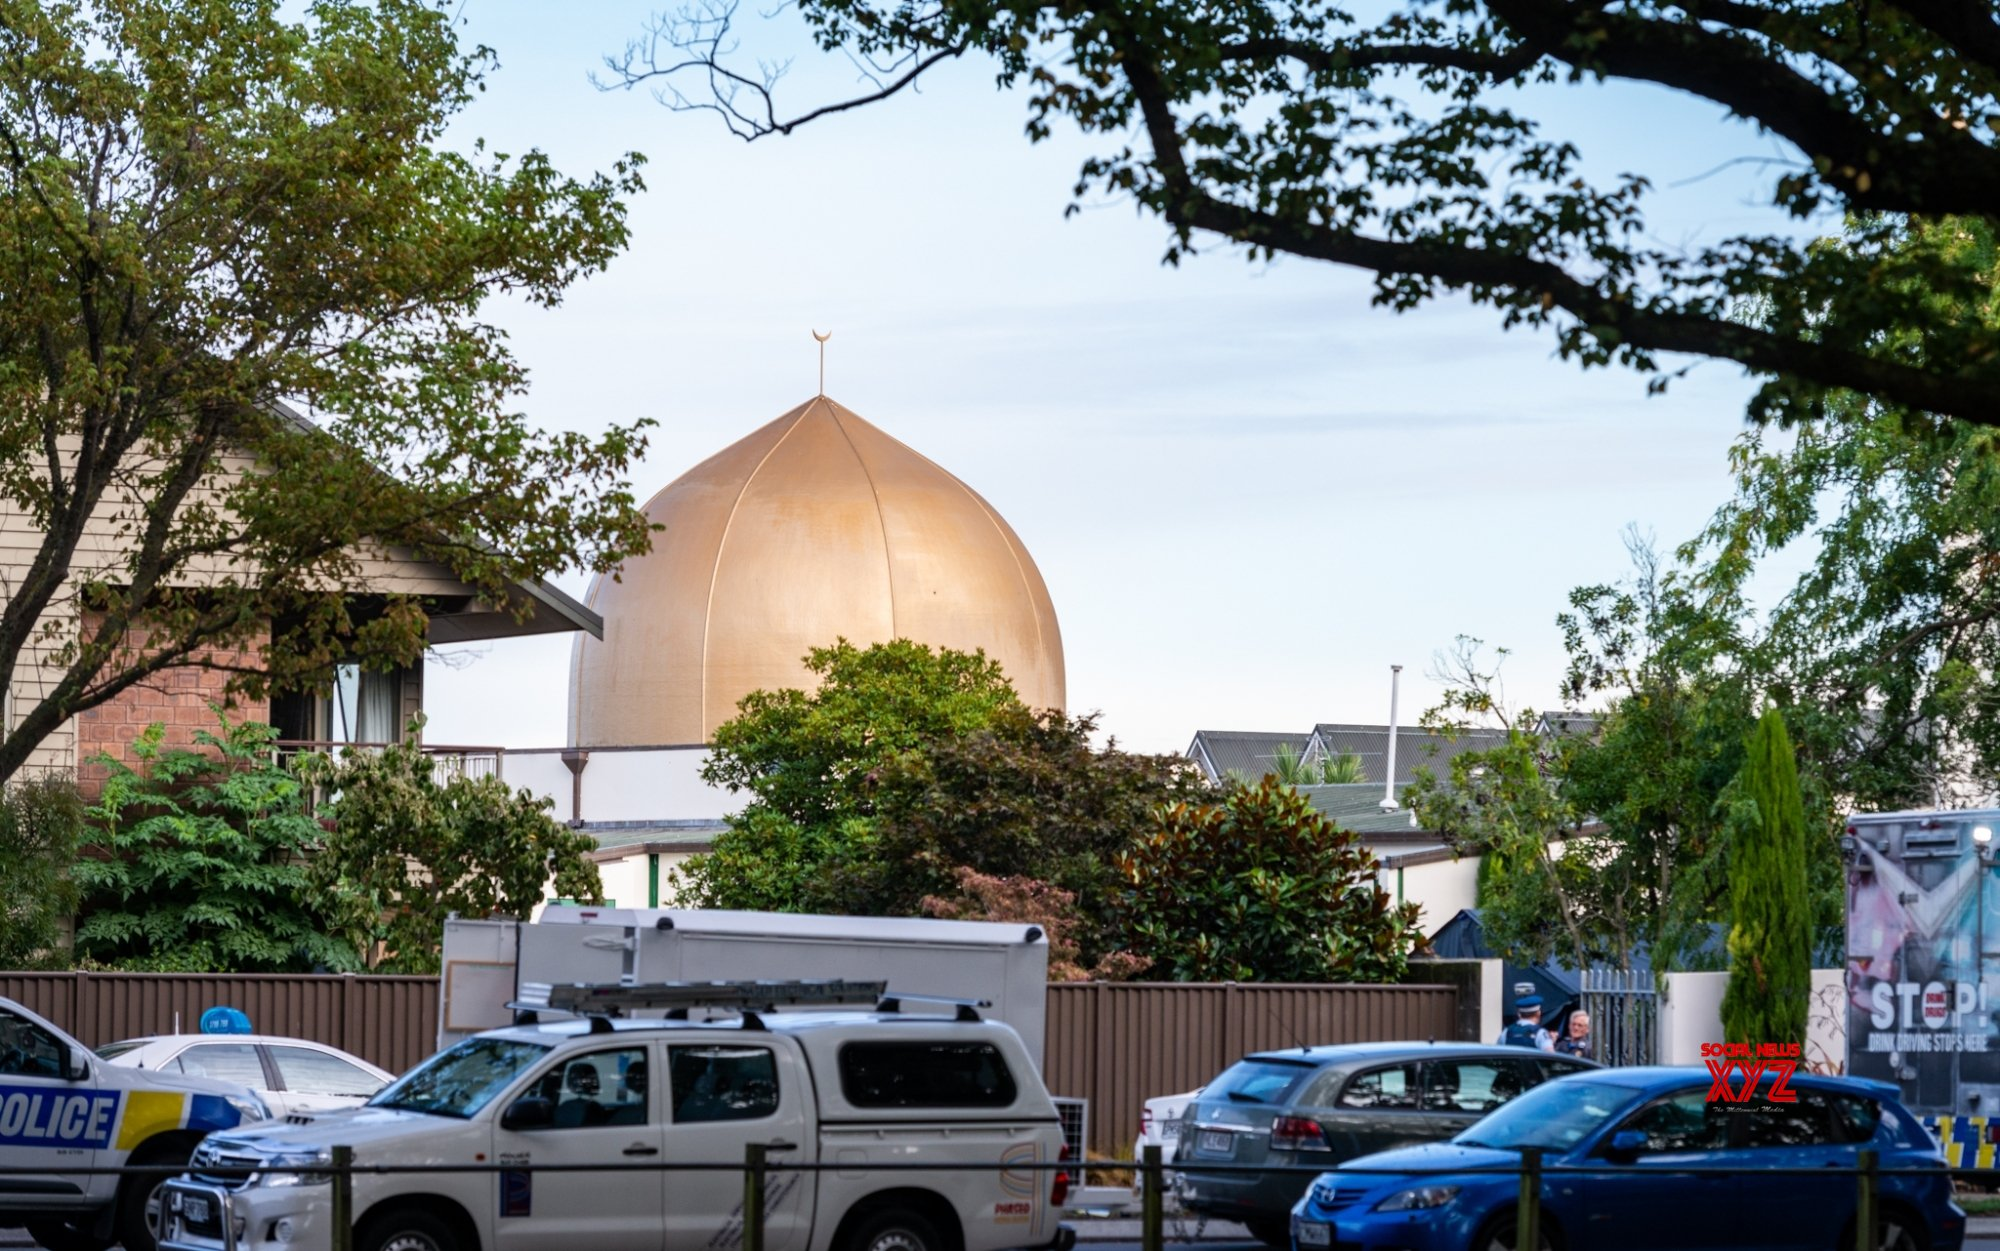 Christchurch shooter pleads not guilty on 92 charges